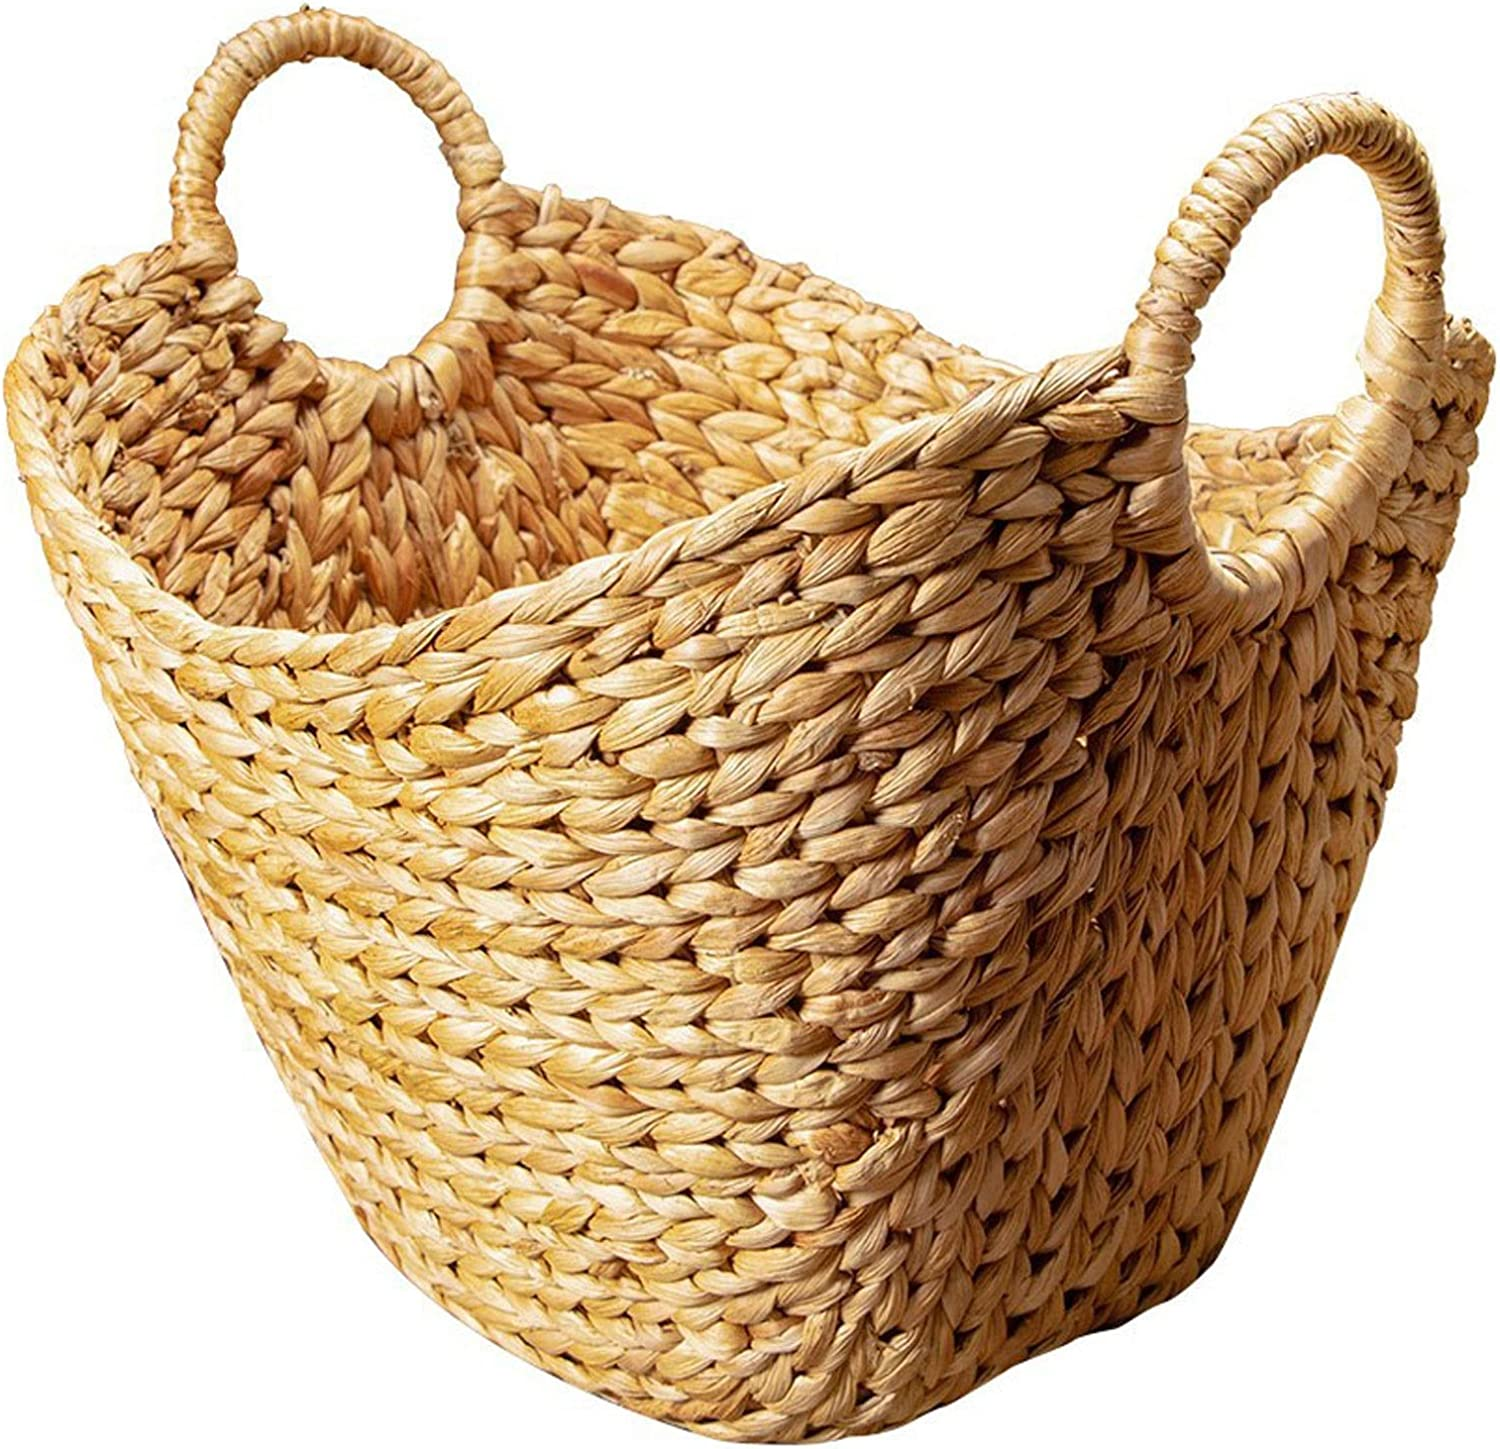 lowest price Translated Electric oven Nordic Rattan Straw Basket Dirty Clothes Hand-Wove